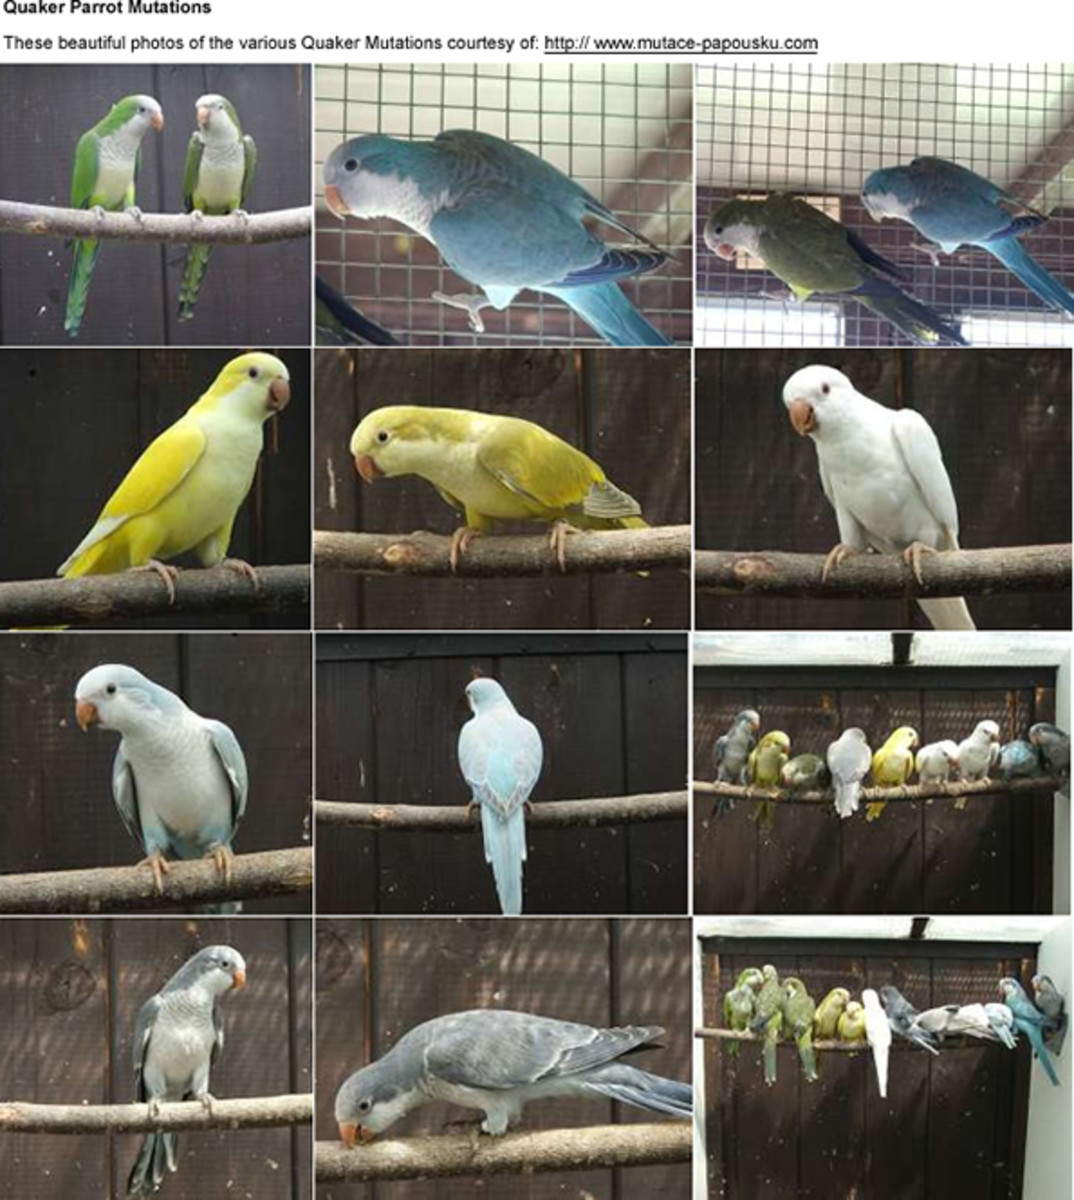 Several mutations of Quakers